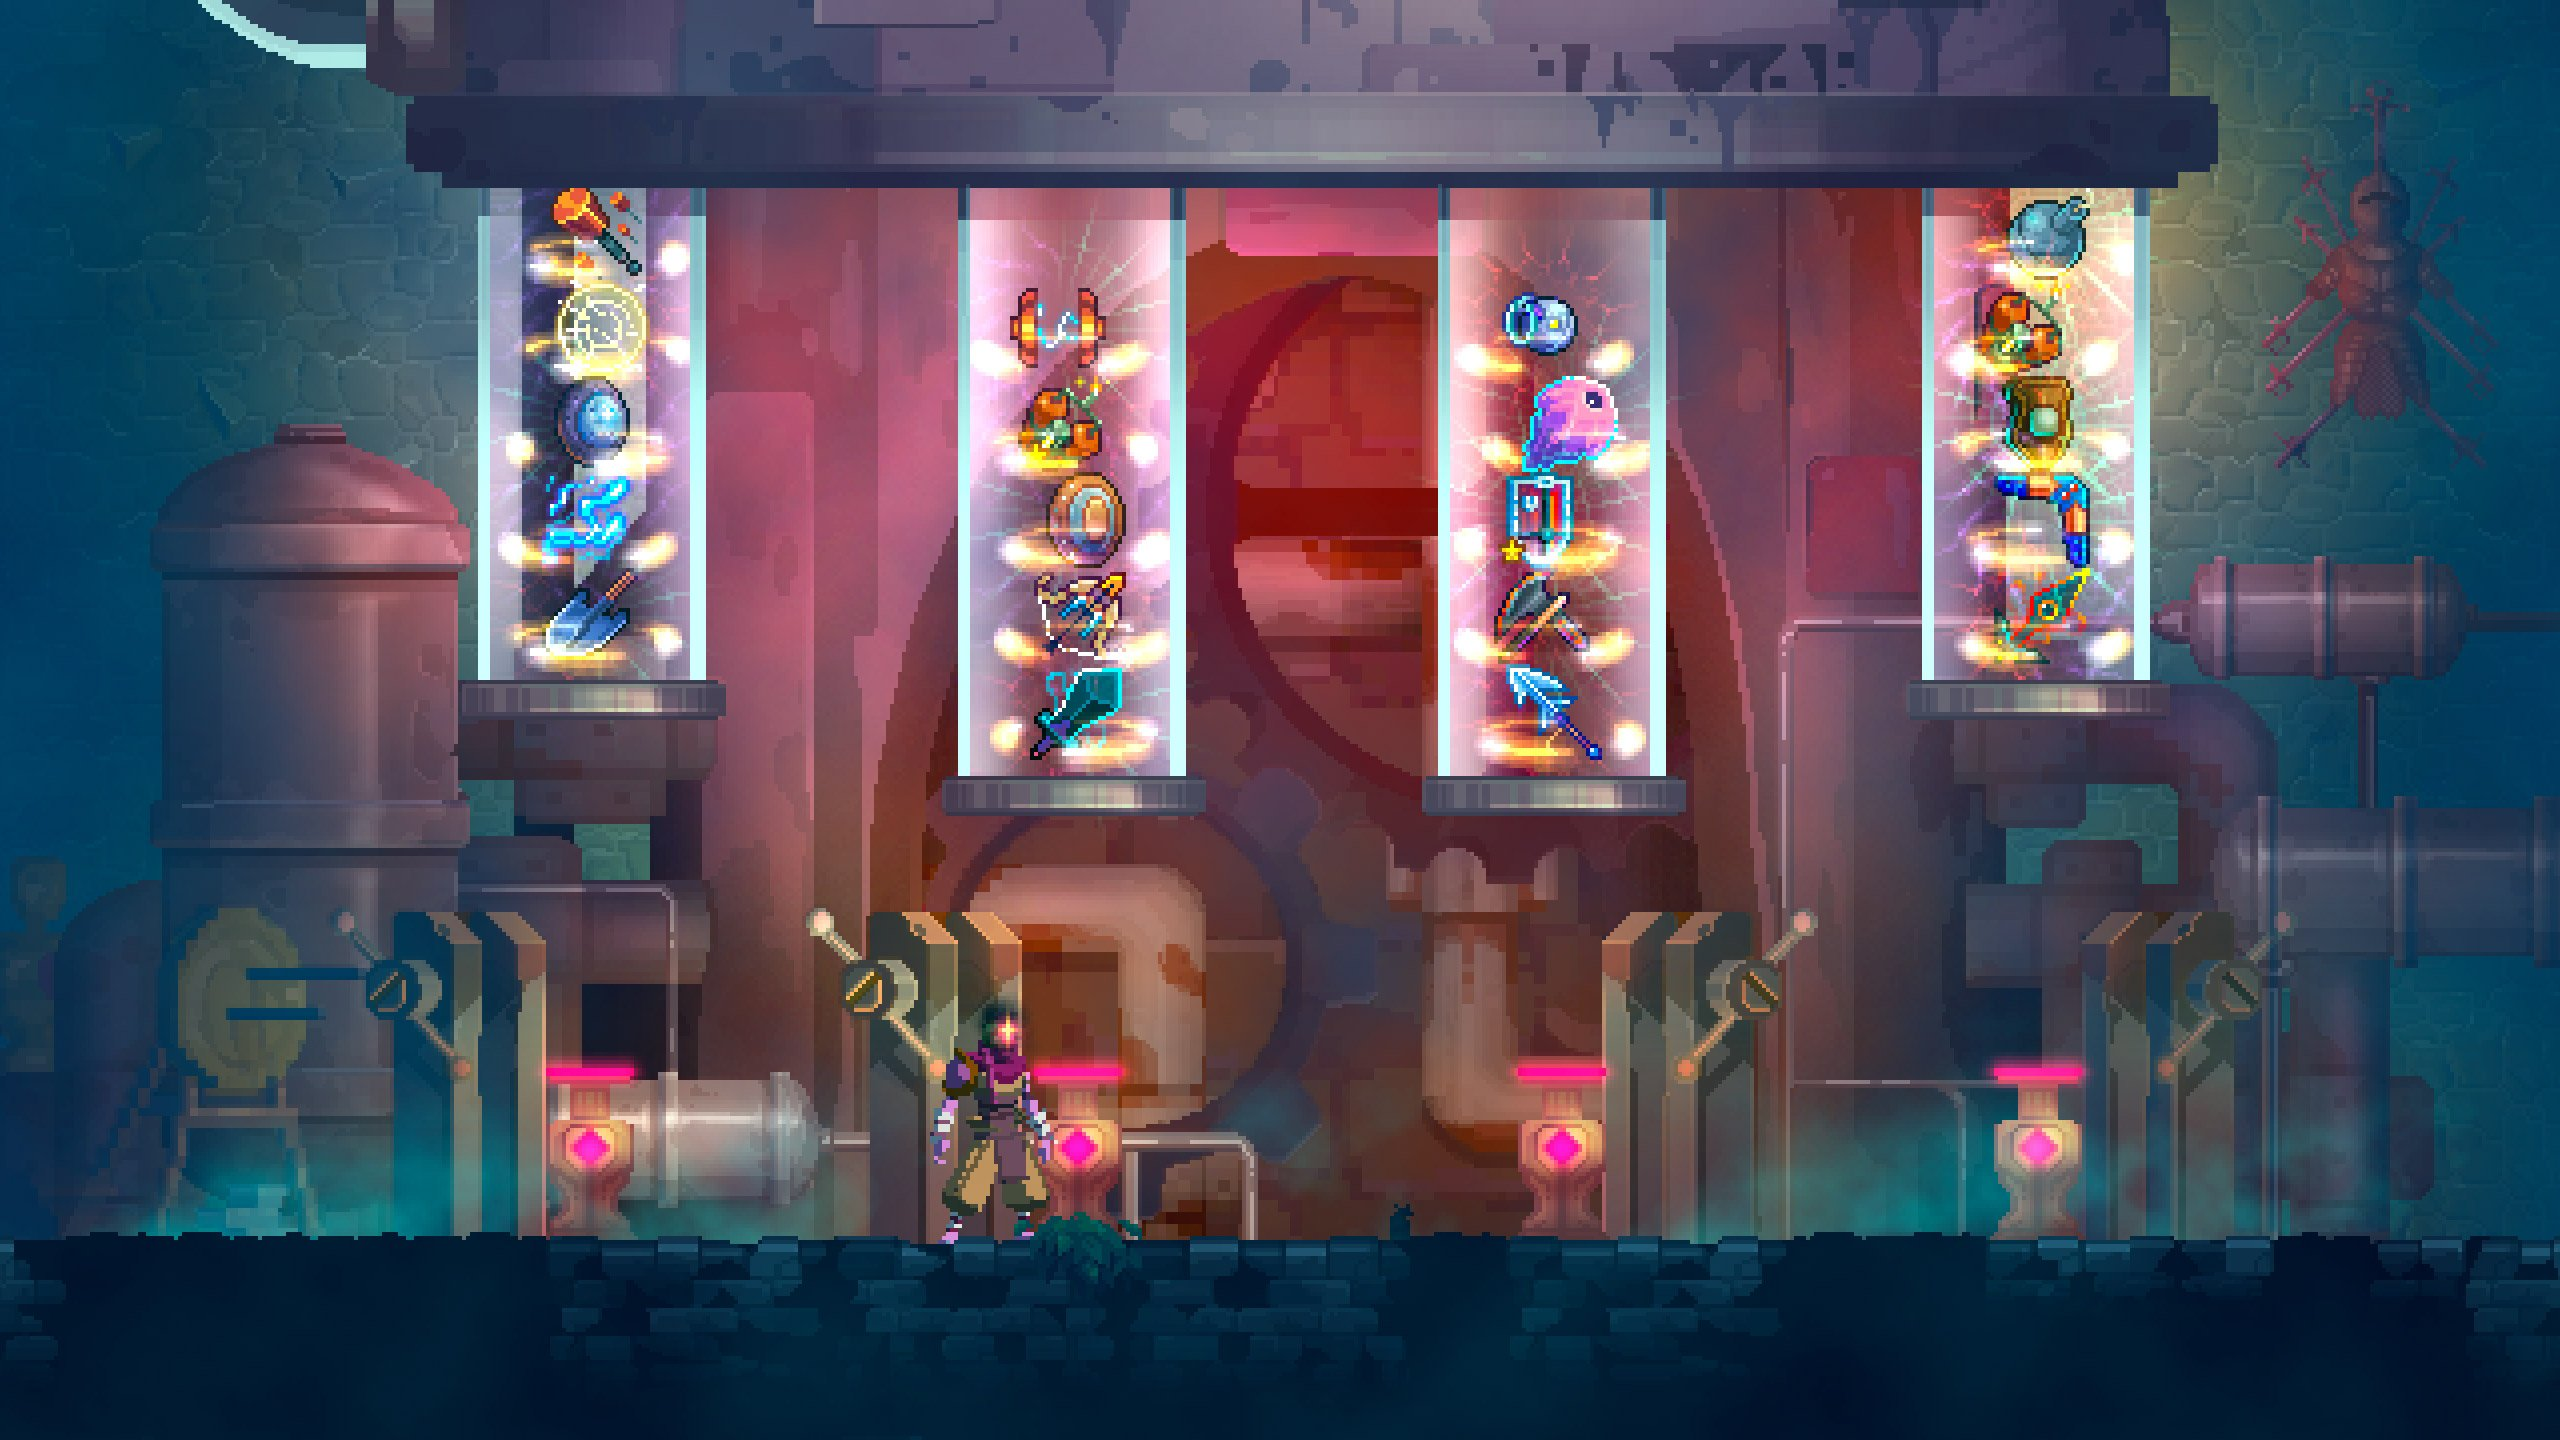 Dead Cells has a new rune to help you fully explore levels